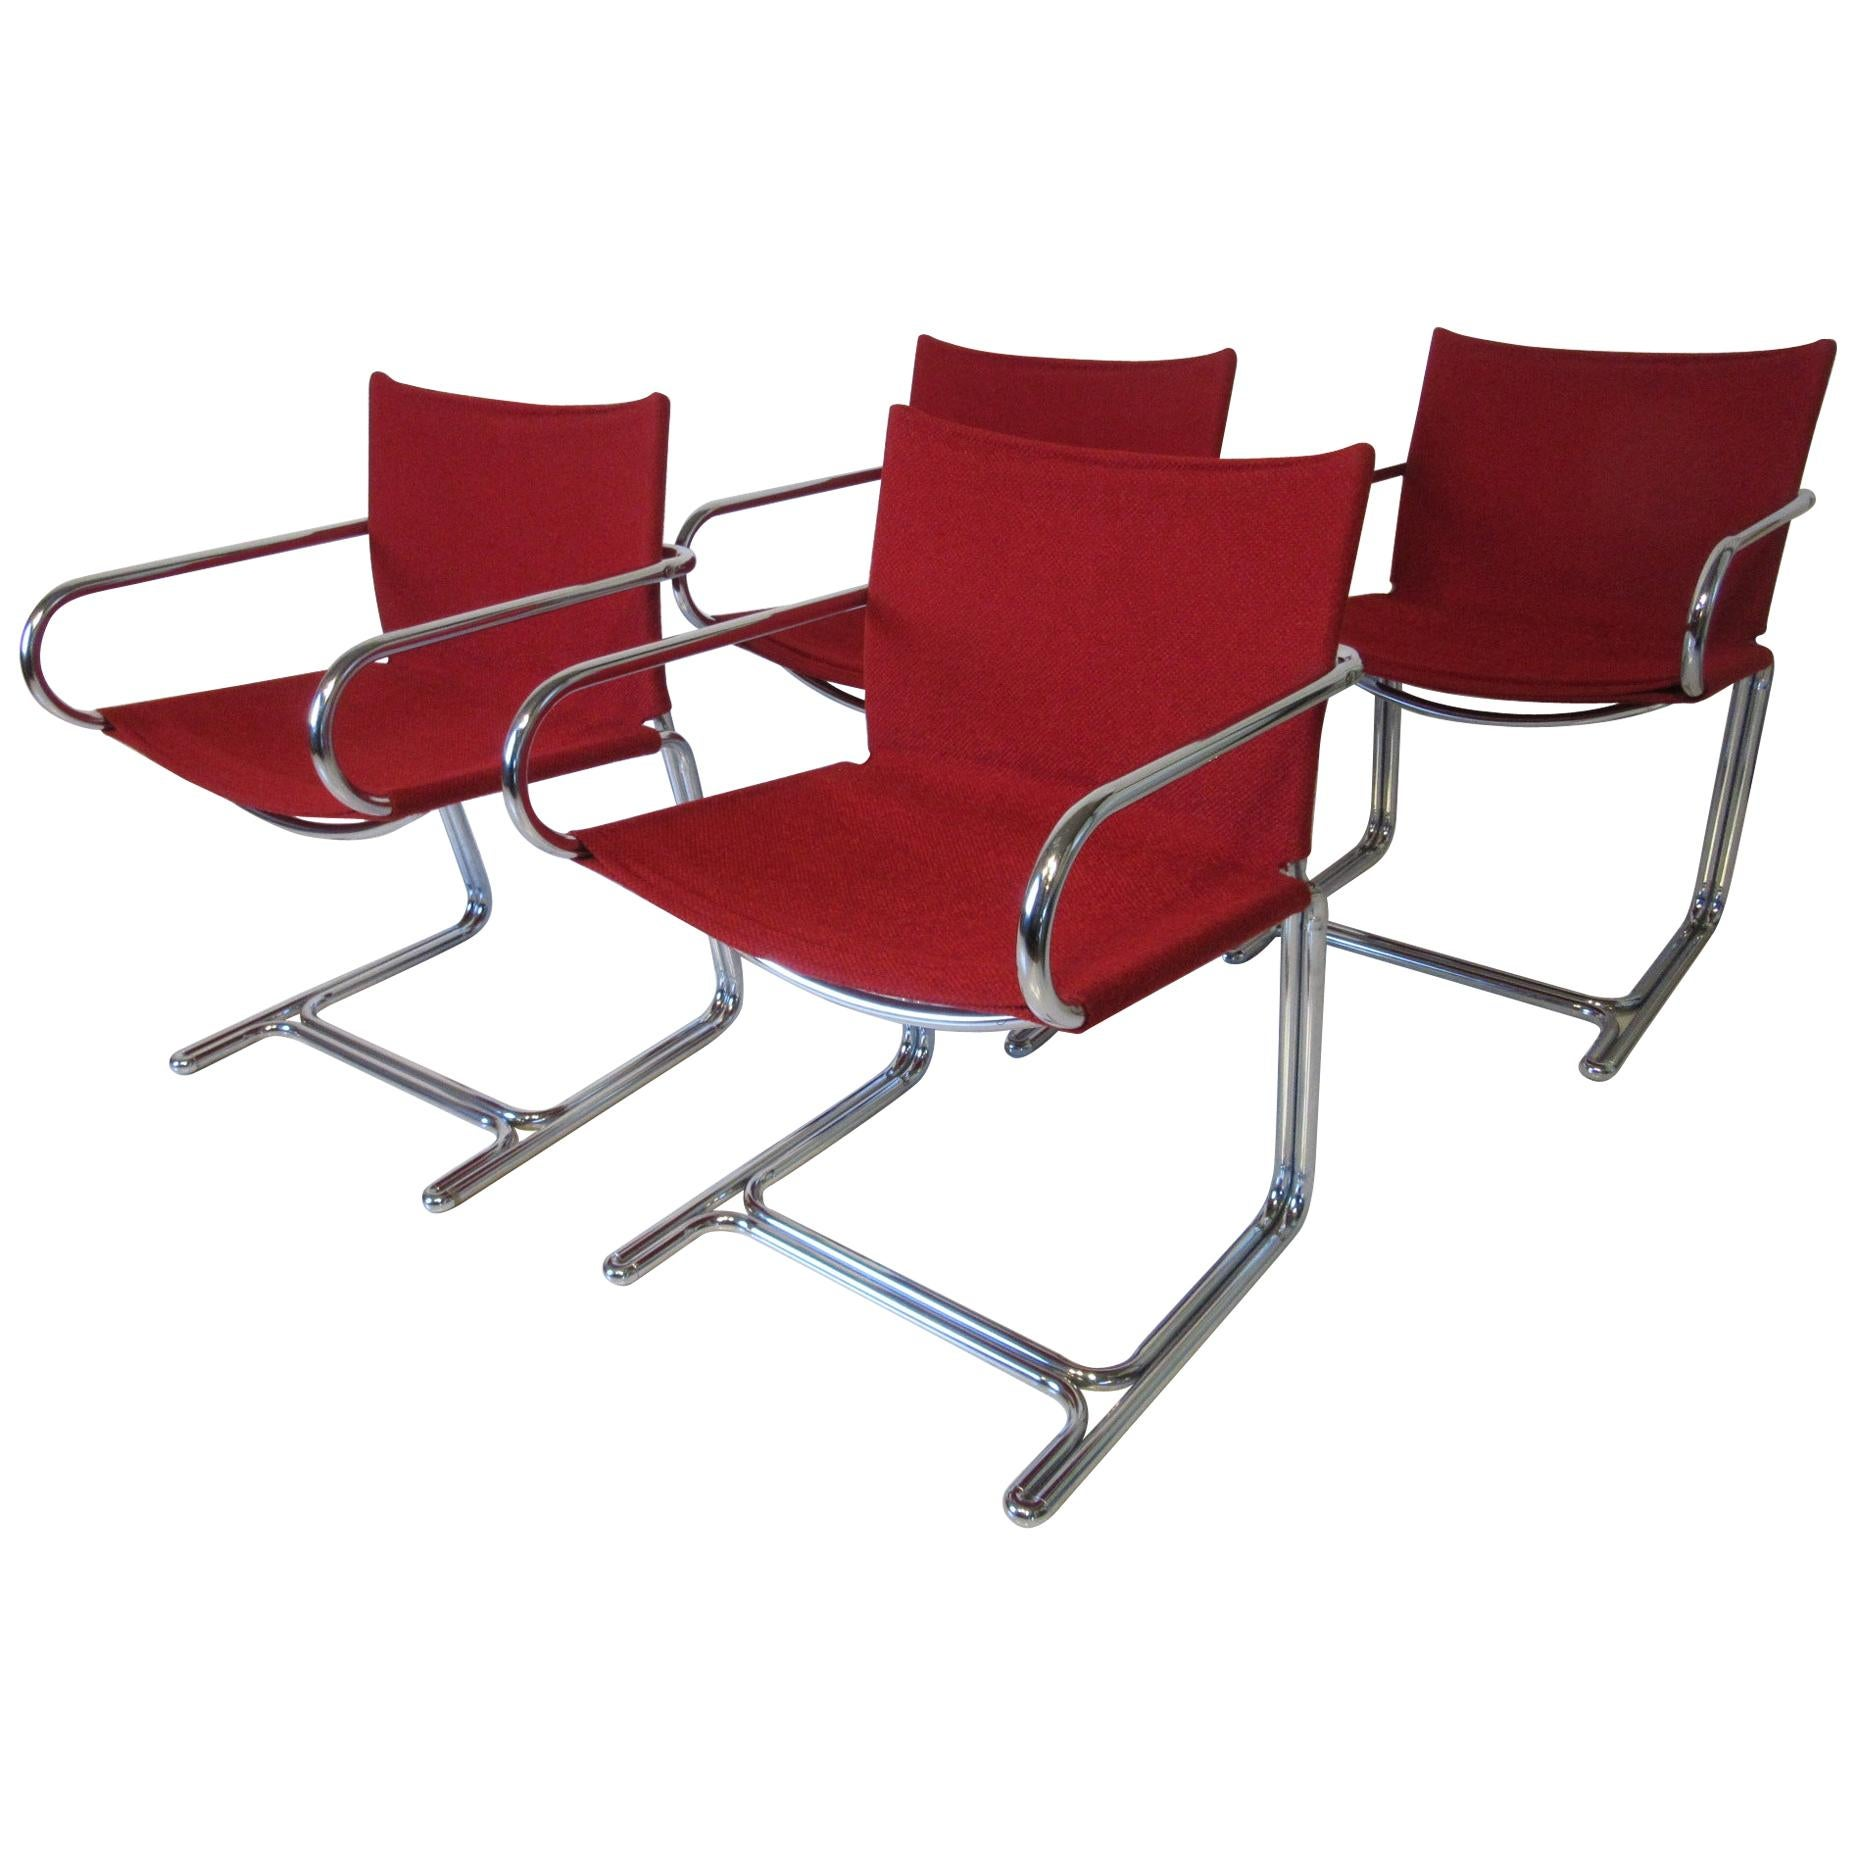 1970s Upholstered Cantilevered Chrome Dining Chairs in the Style of M. Breuer